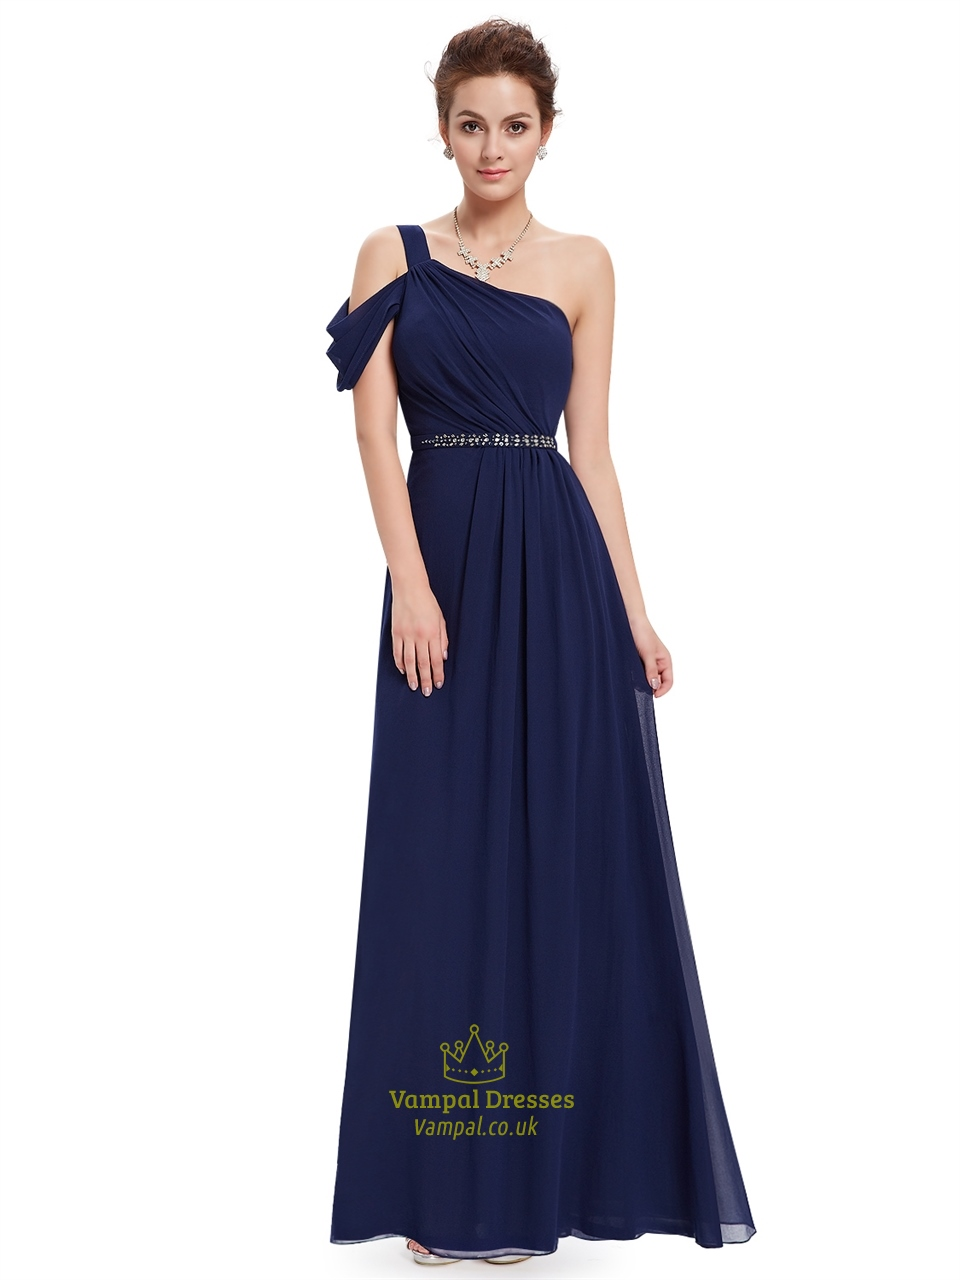 Navy Blue One Shoulder Chiffon Long Bridesmaid Dress With Beaded Waist | Vampal Dresses